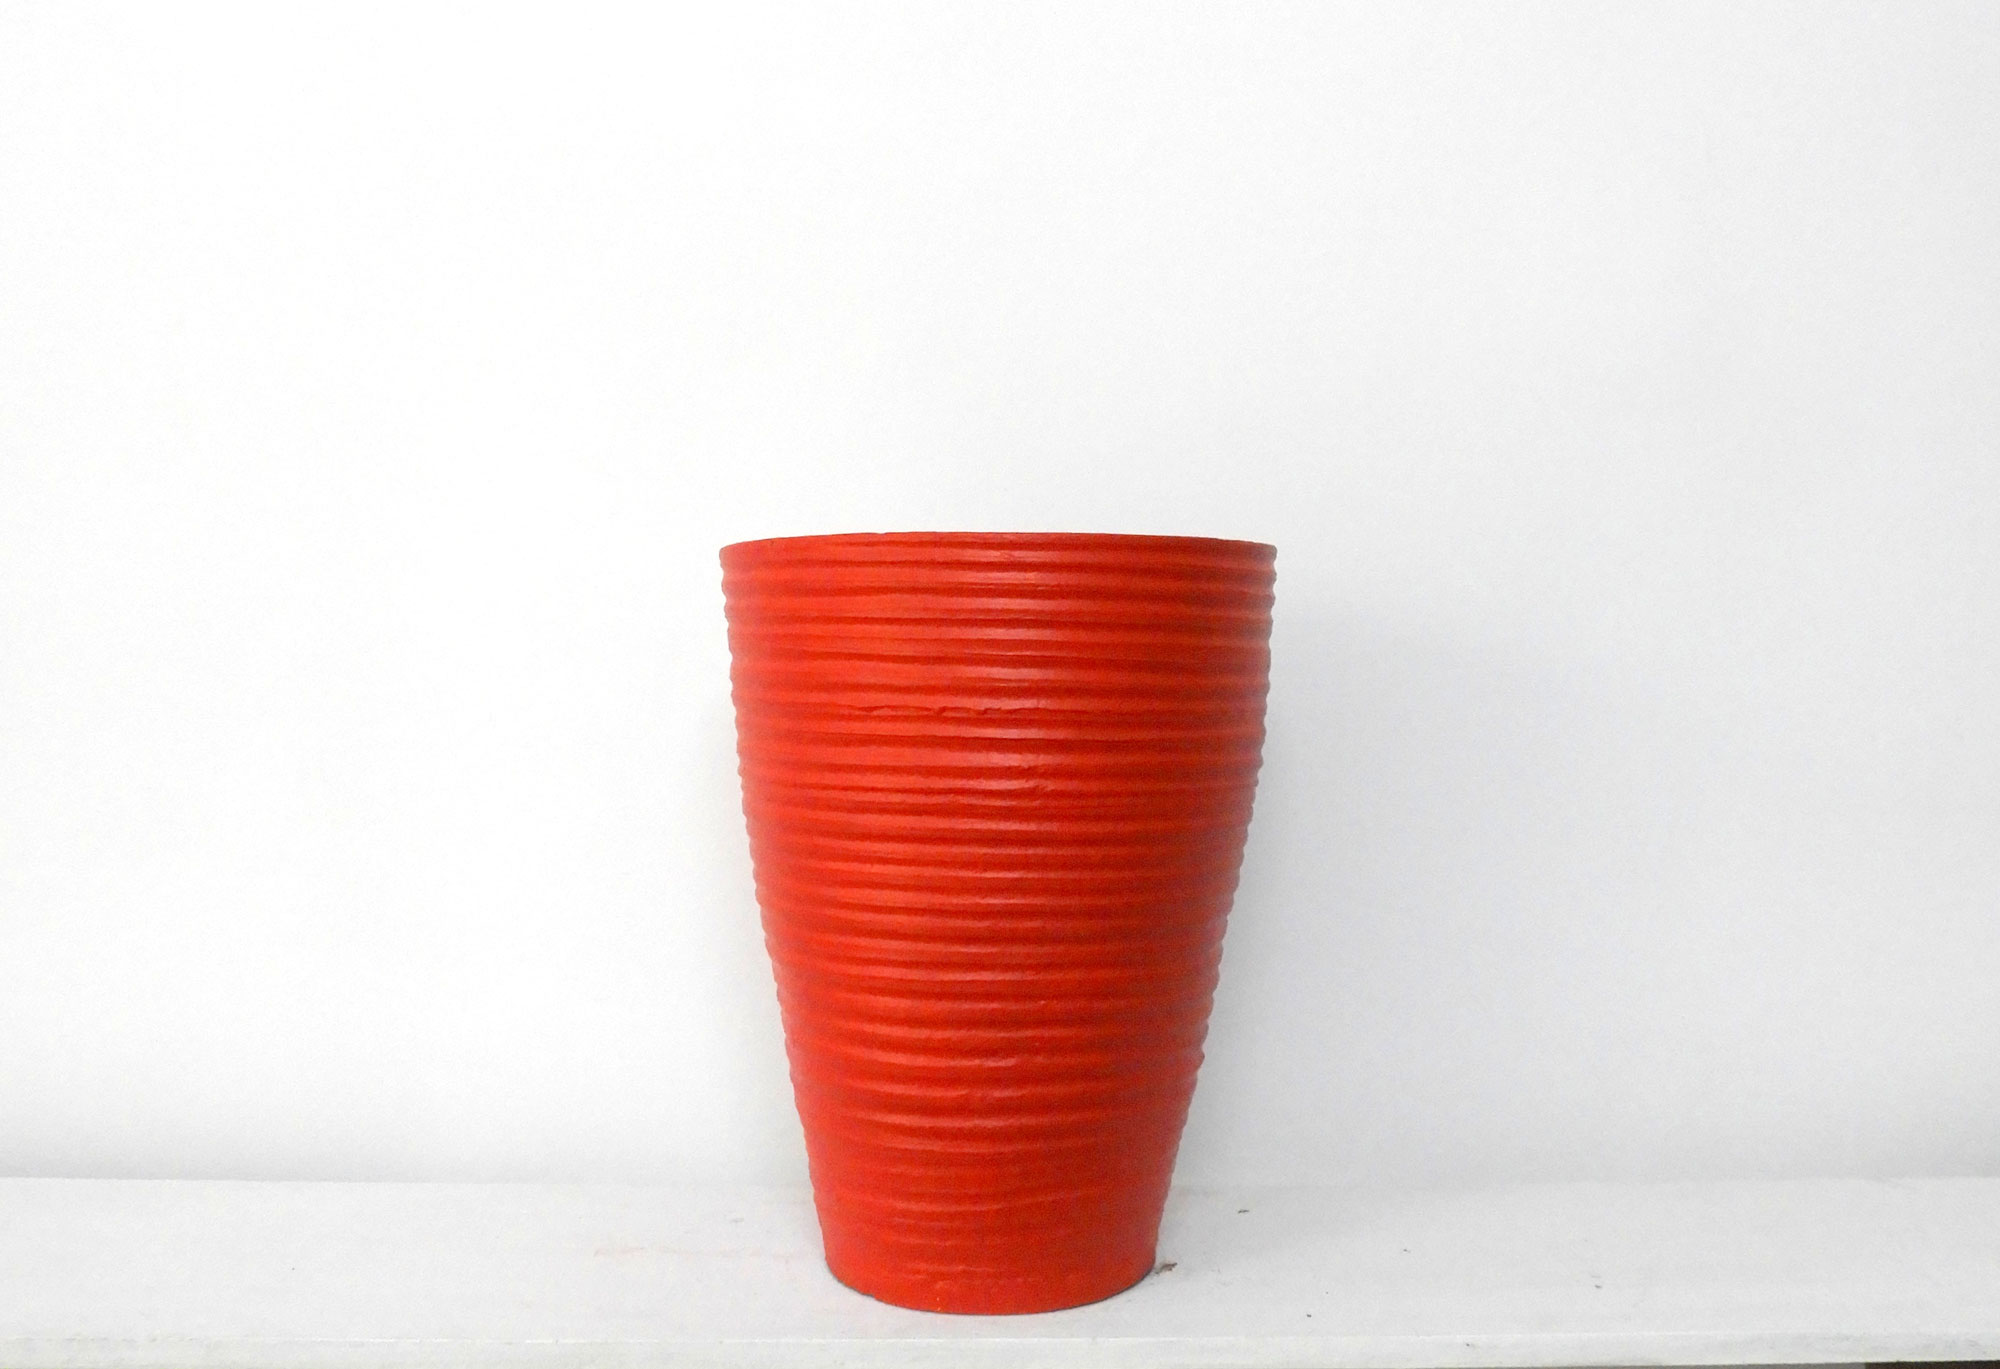 Cone_Ridged(XL)_Painted